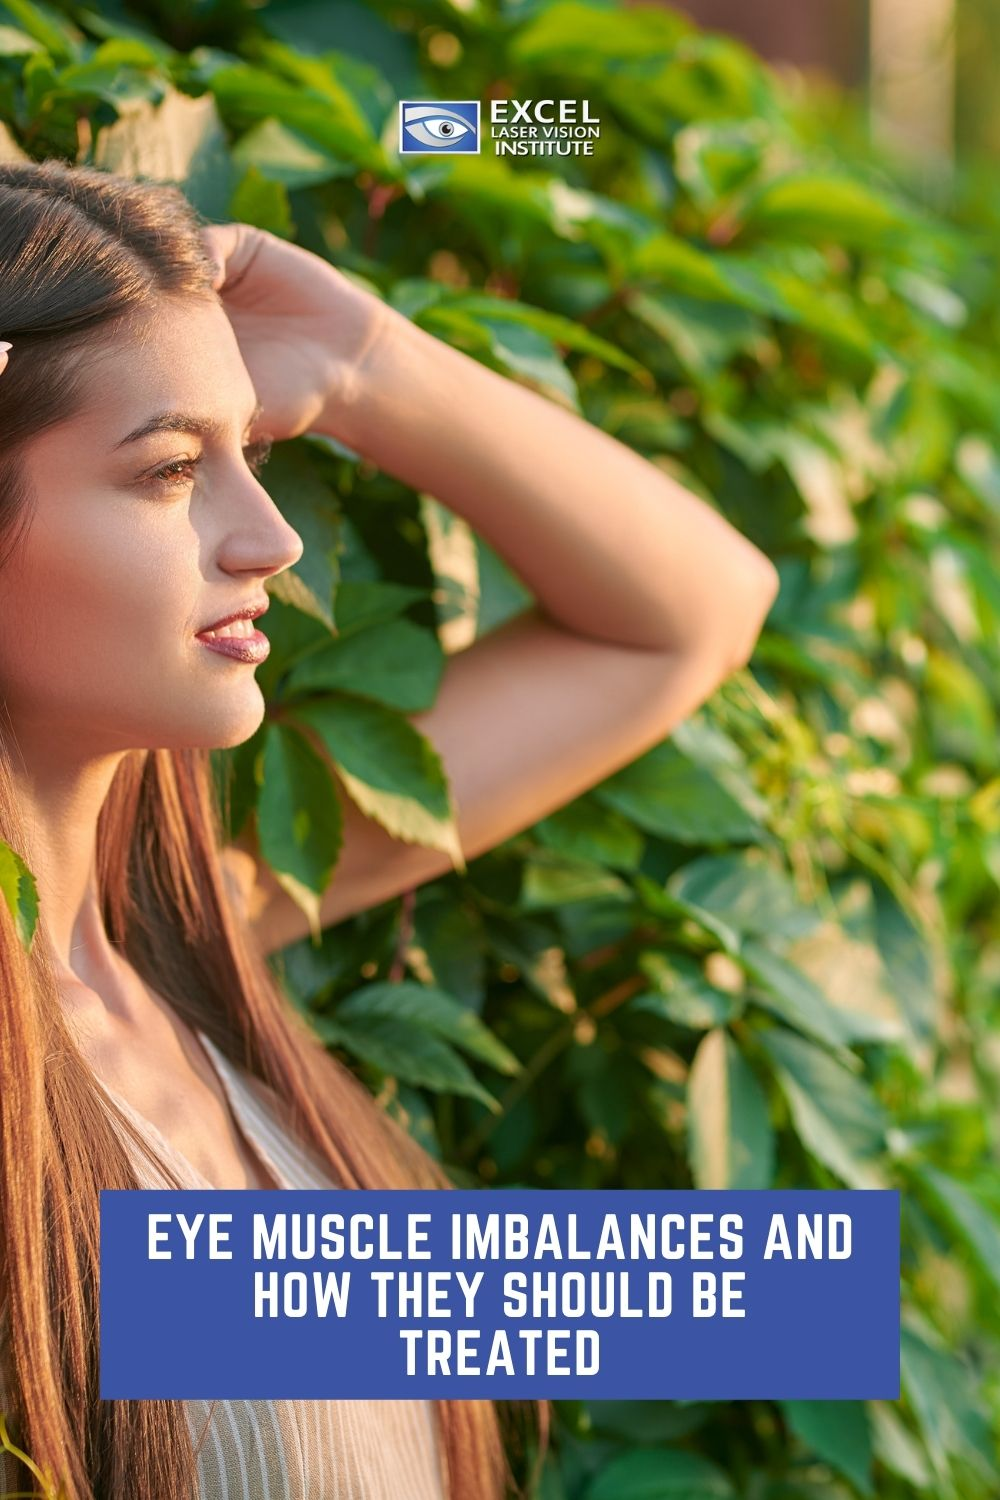 Treat your eye muscle imbalances with the help of a Lasik surgeon in Los Angeles.